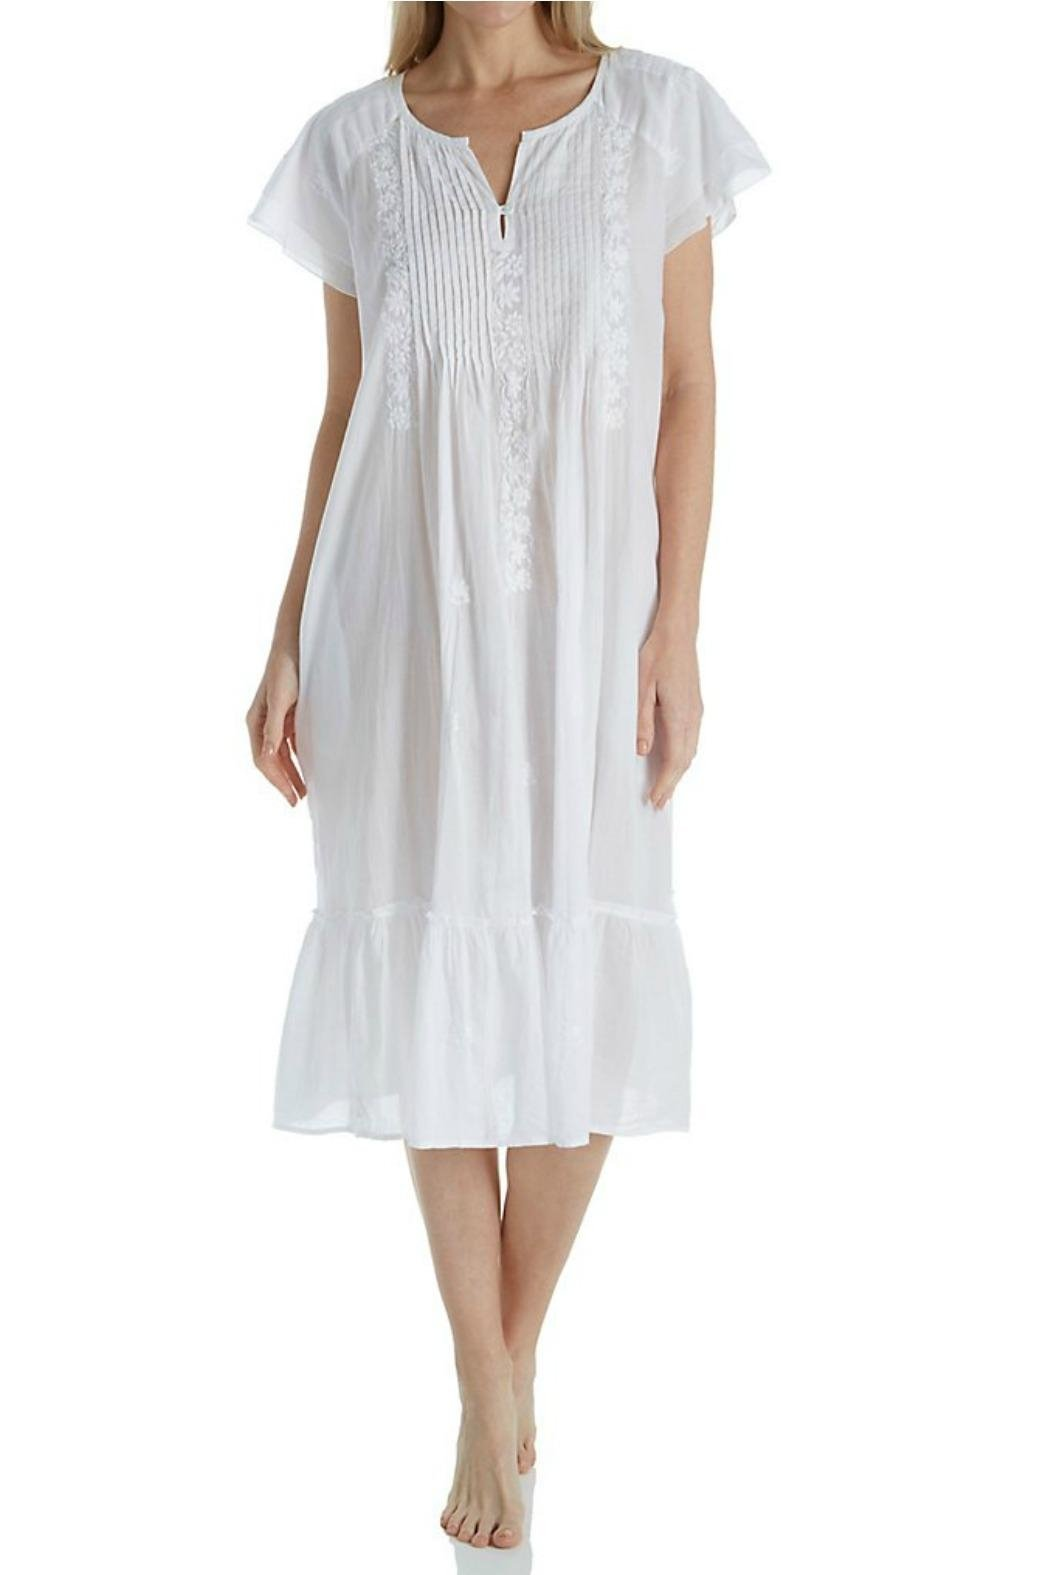 1166G Cotton Voile Gown White